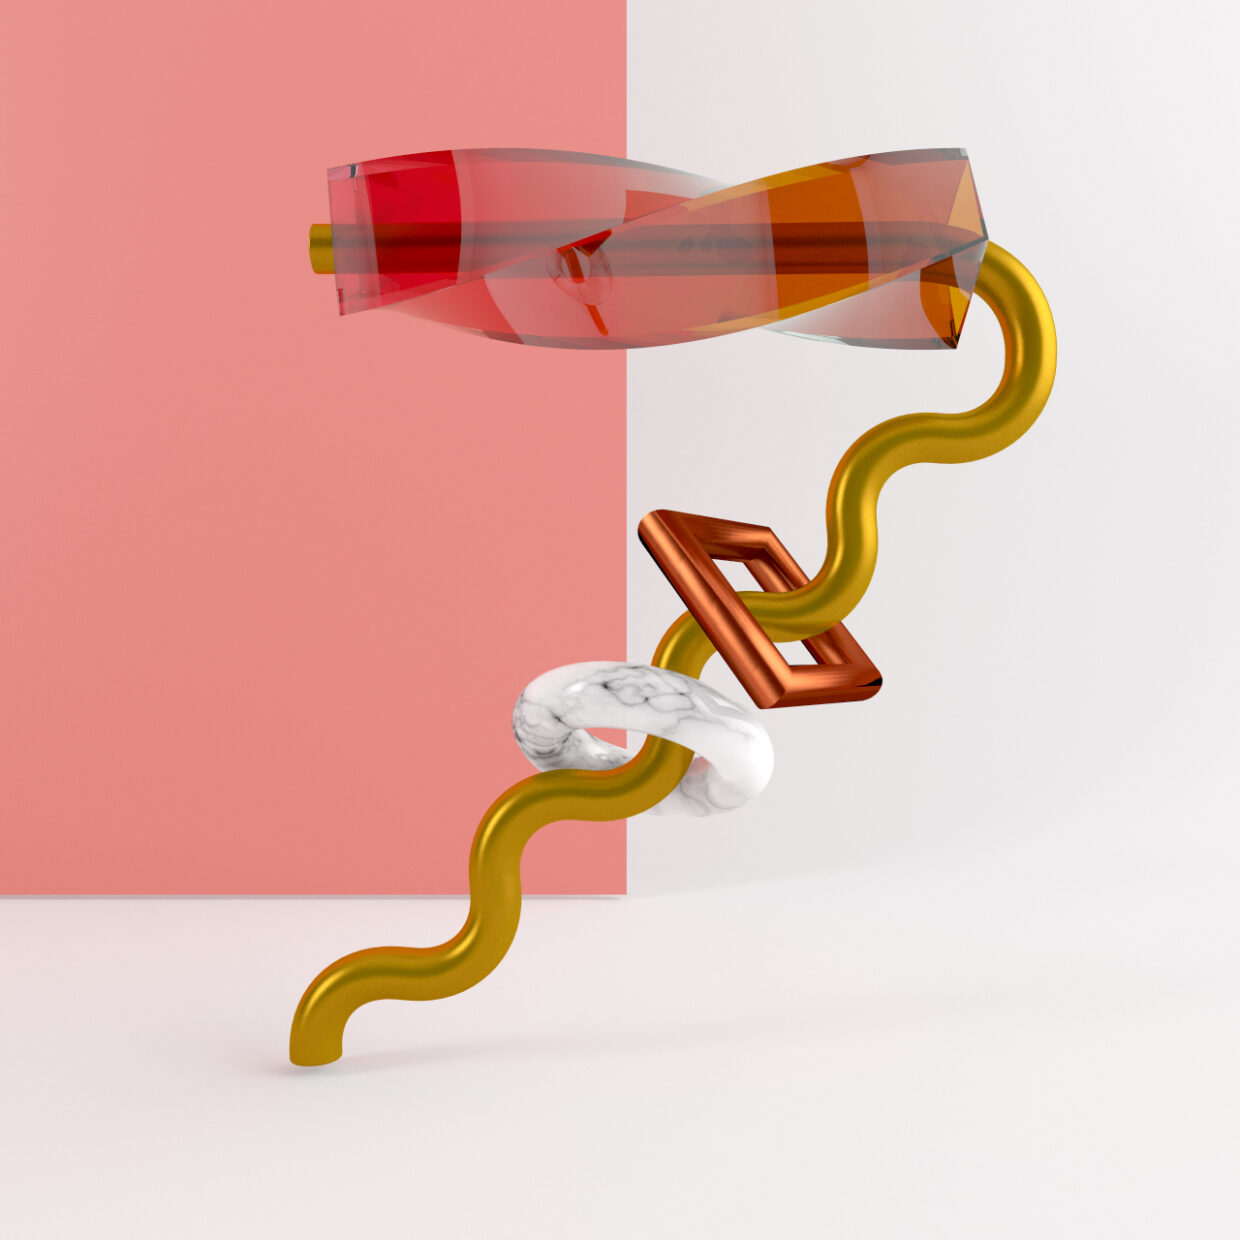 3D illustration of an abstract number seven